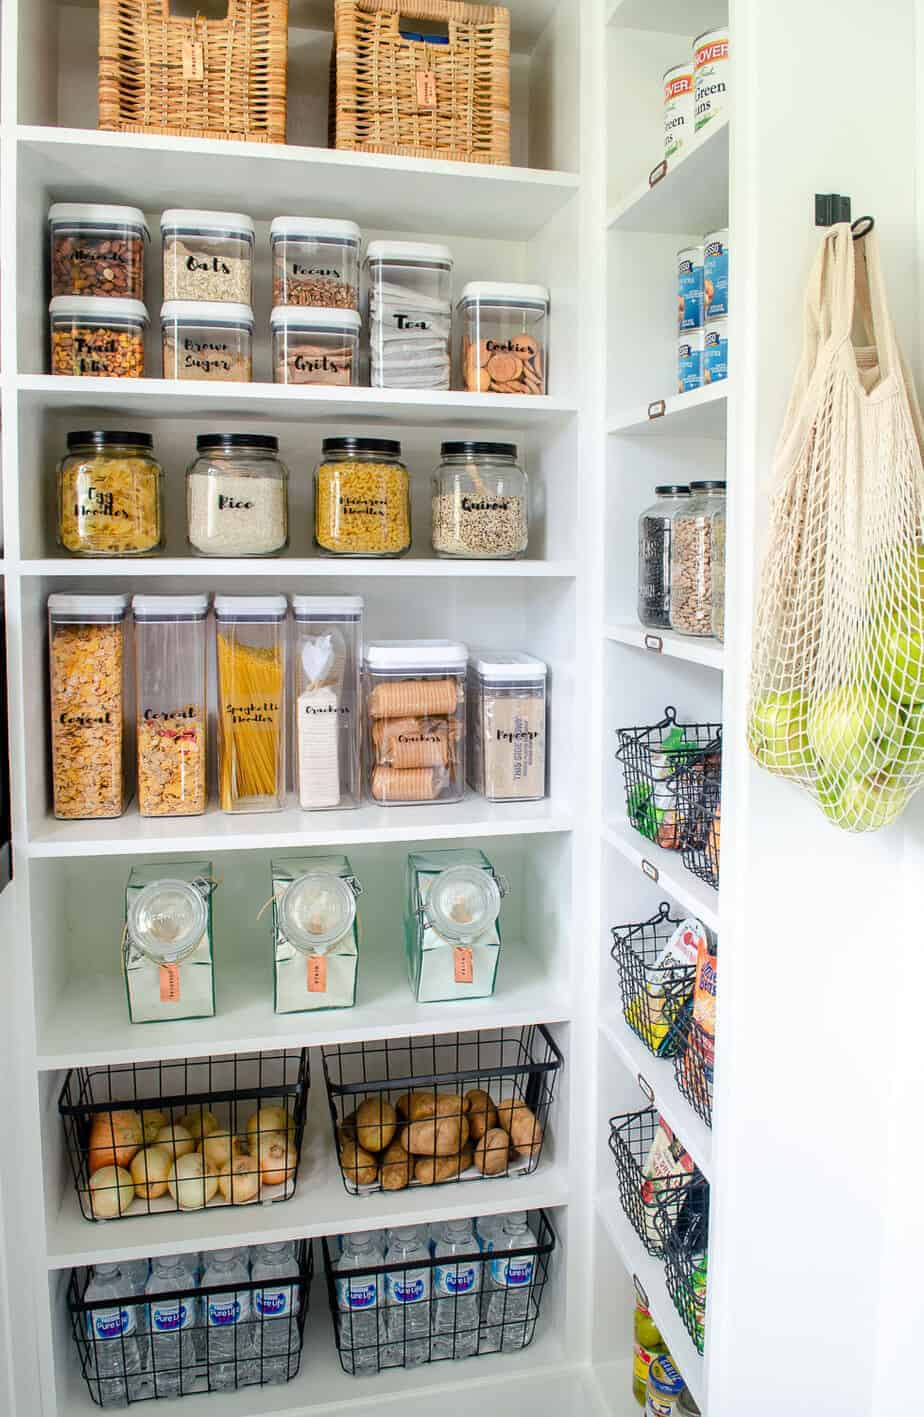 pantry shelving with labeled containers and jars